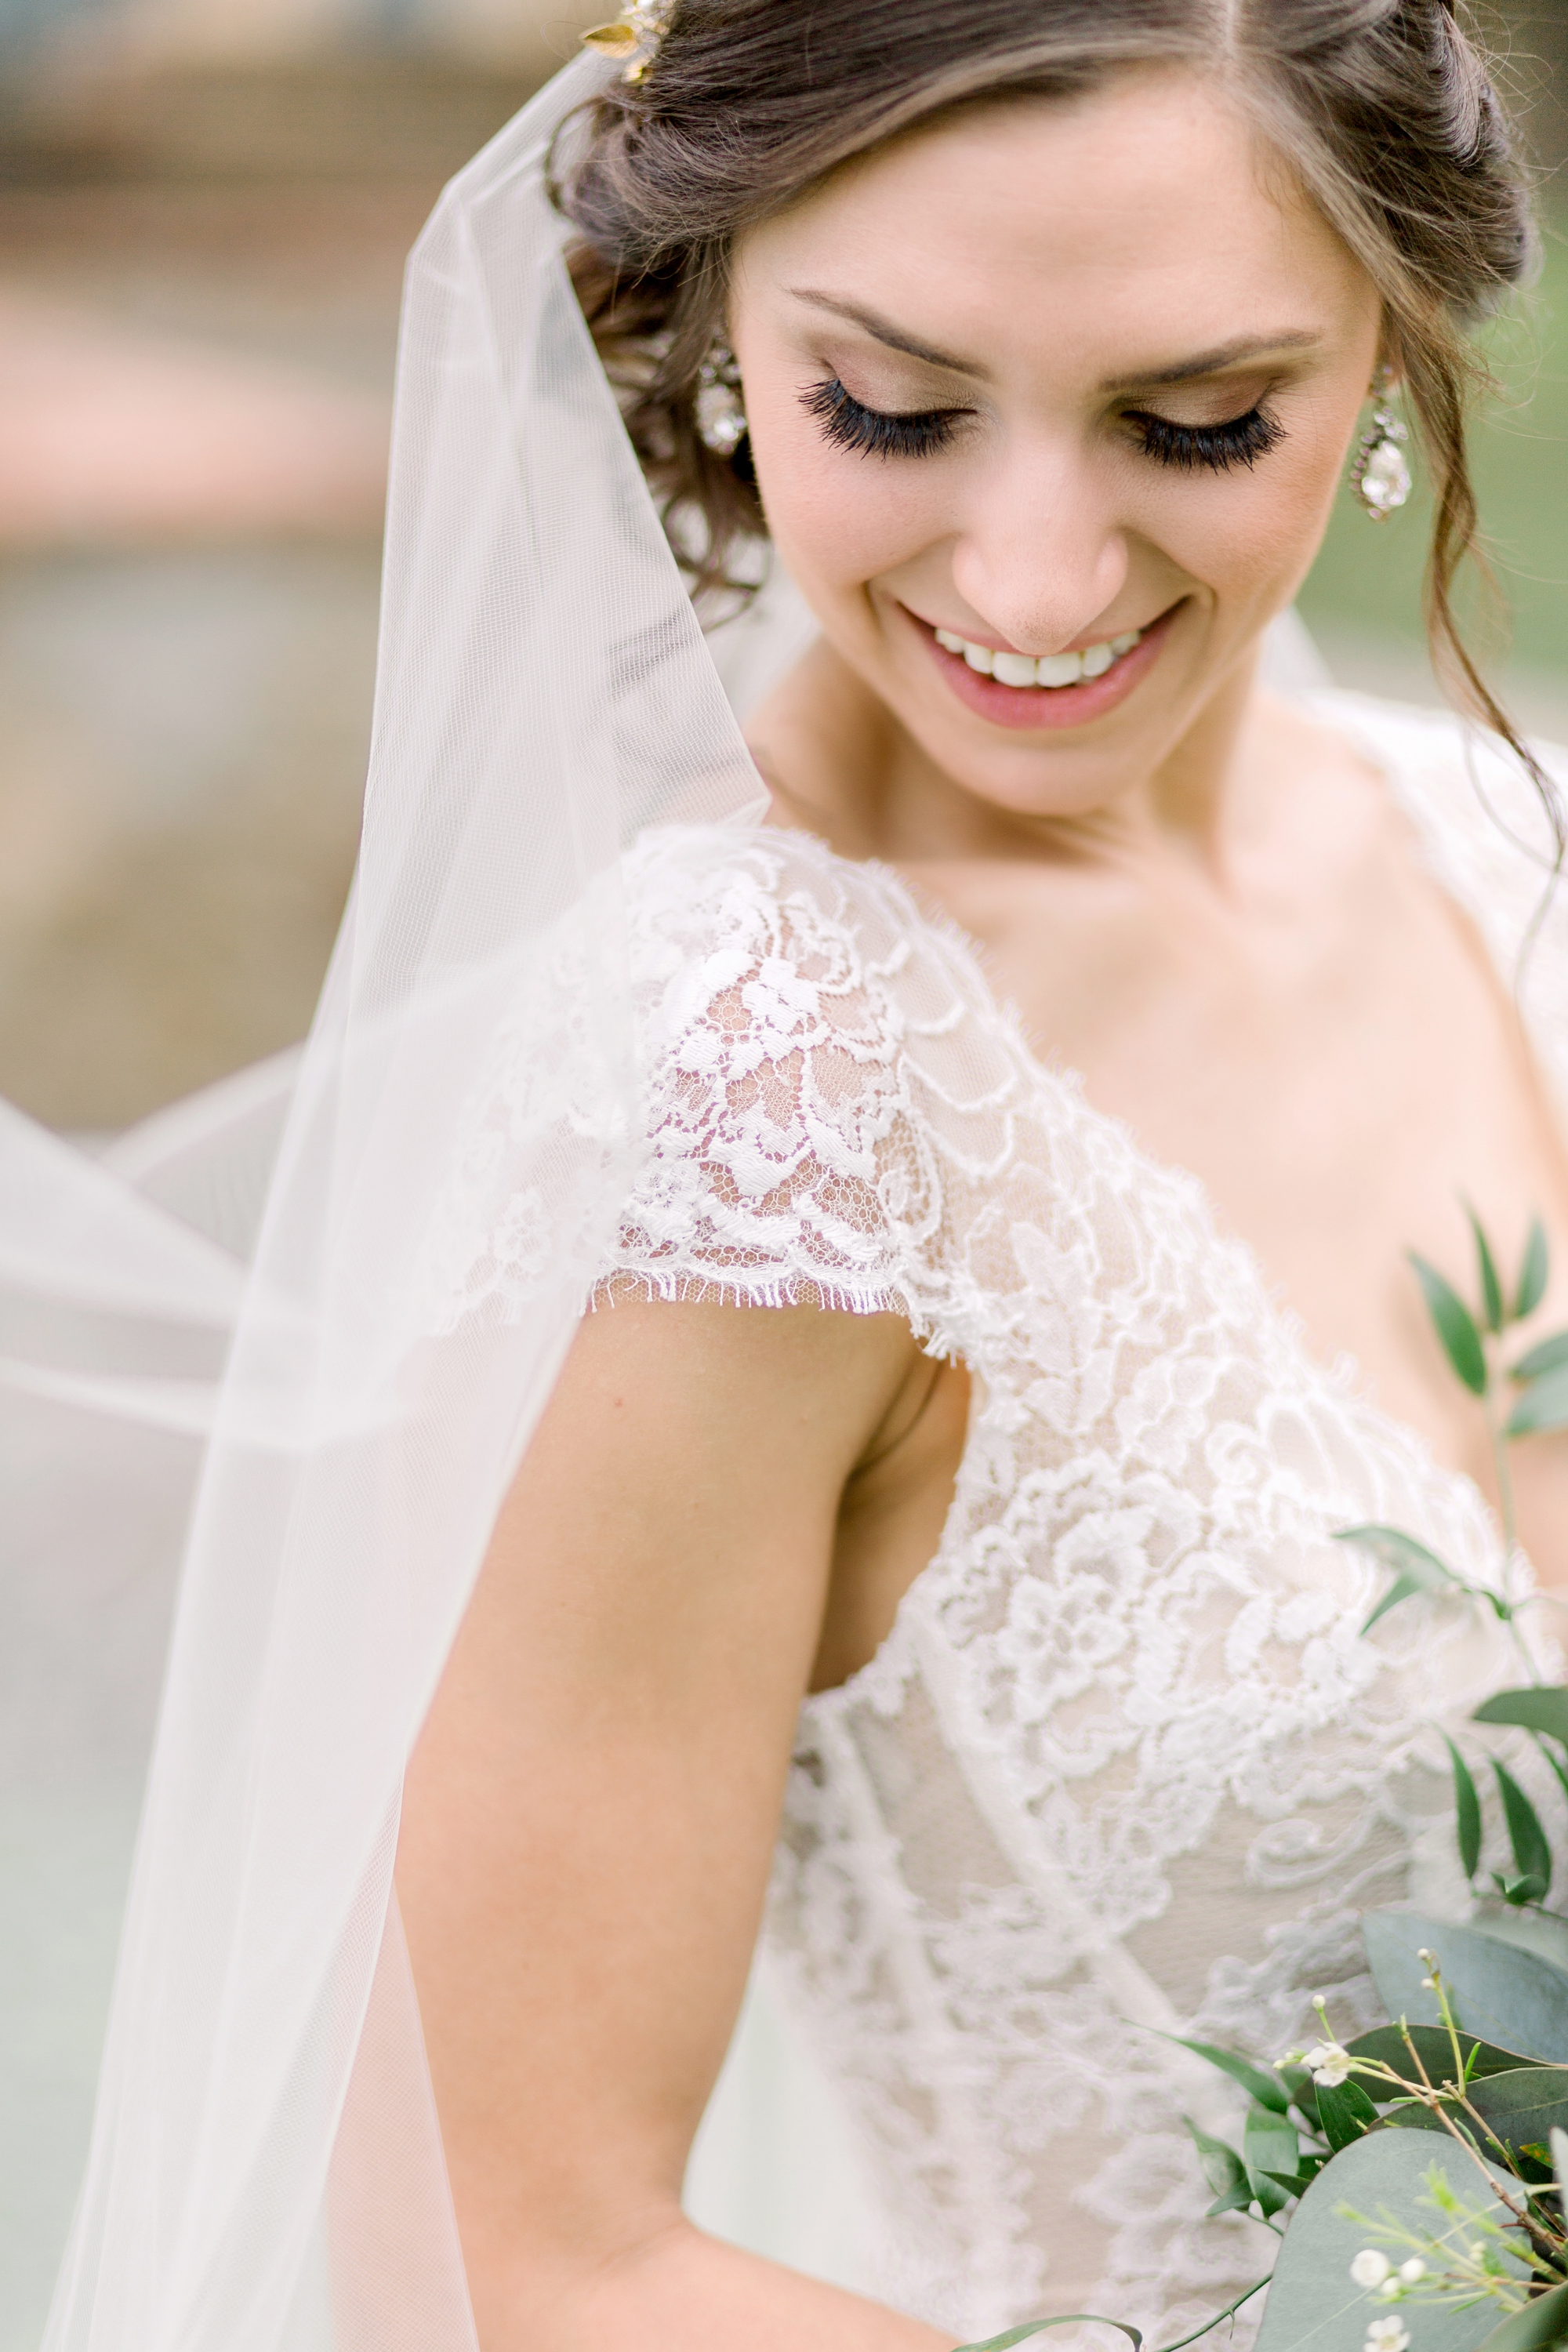 bridal makeup by lejeune artistry in orlando